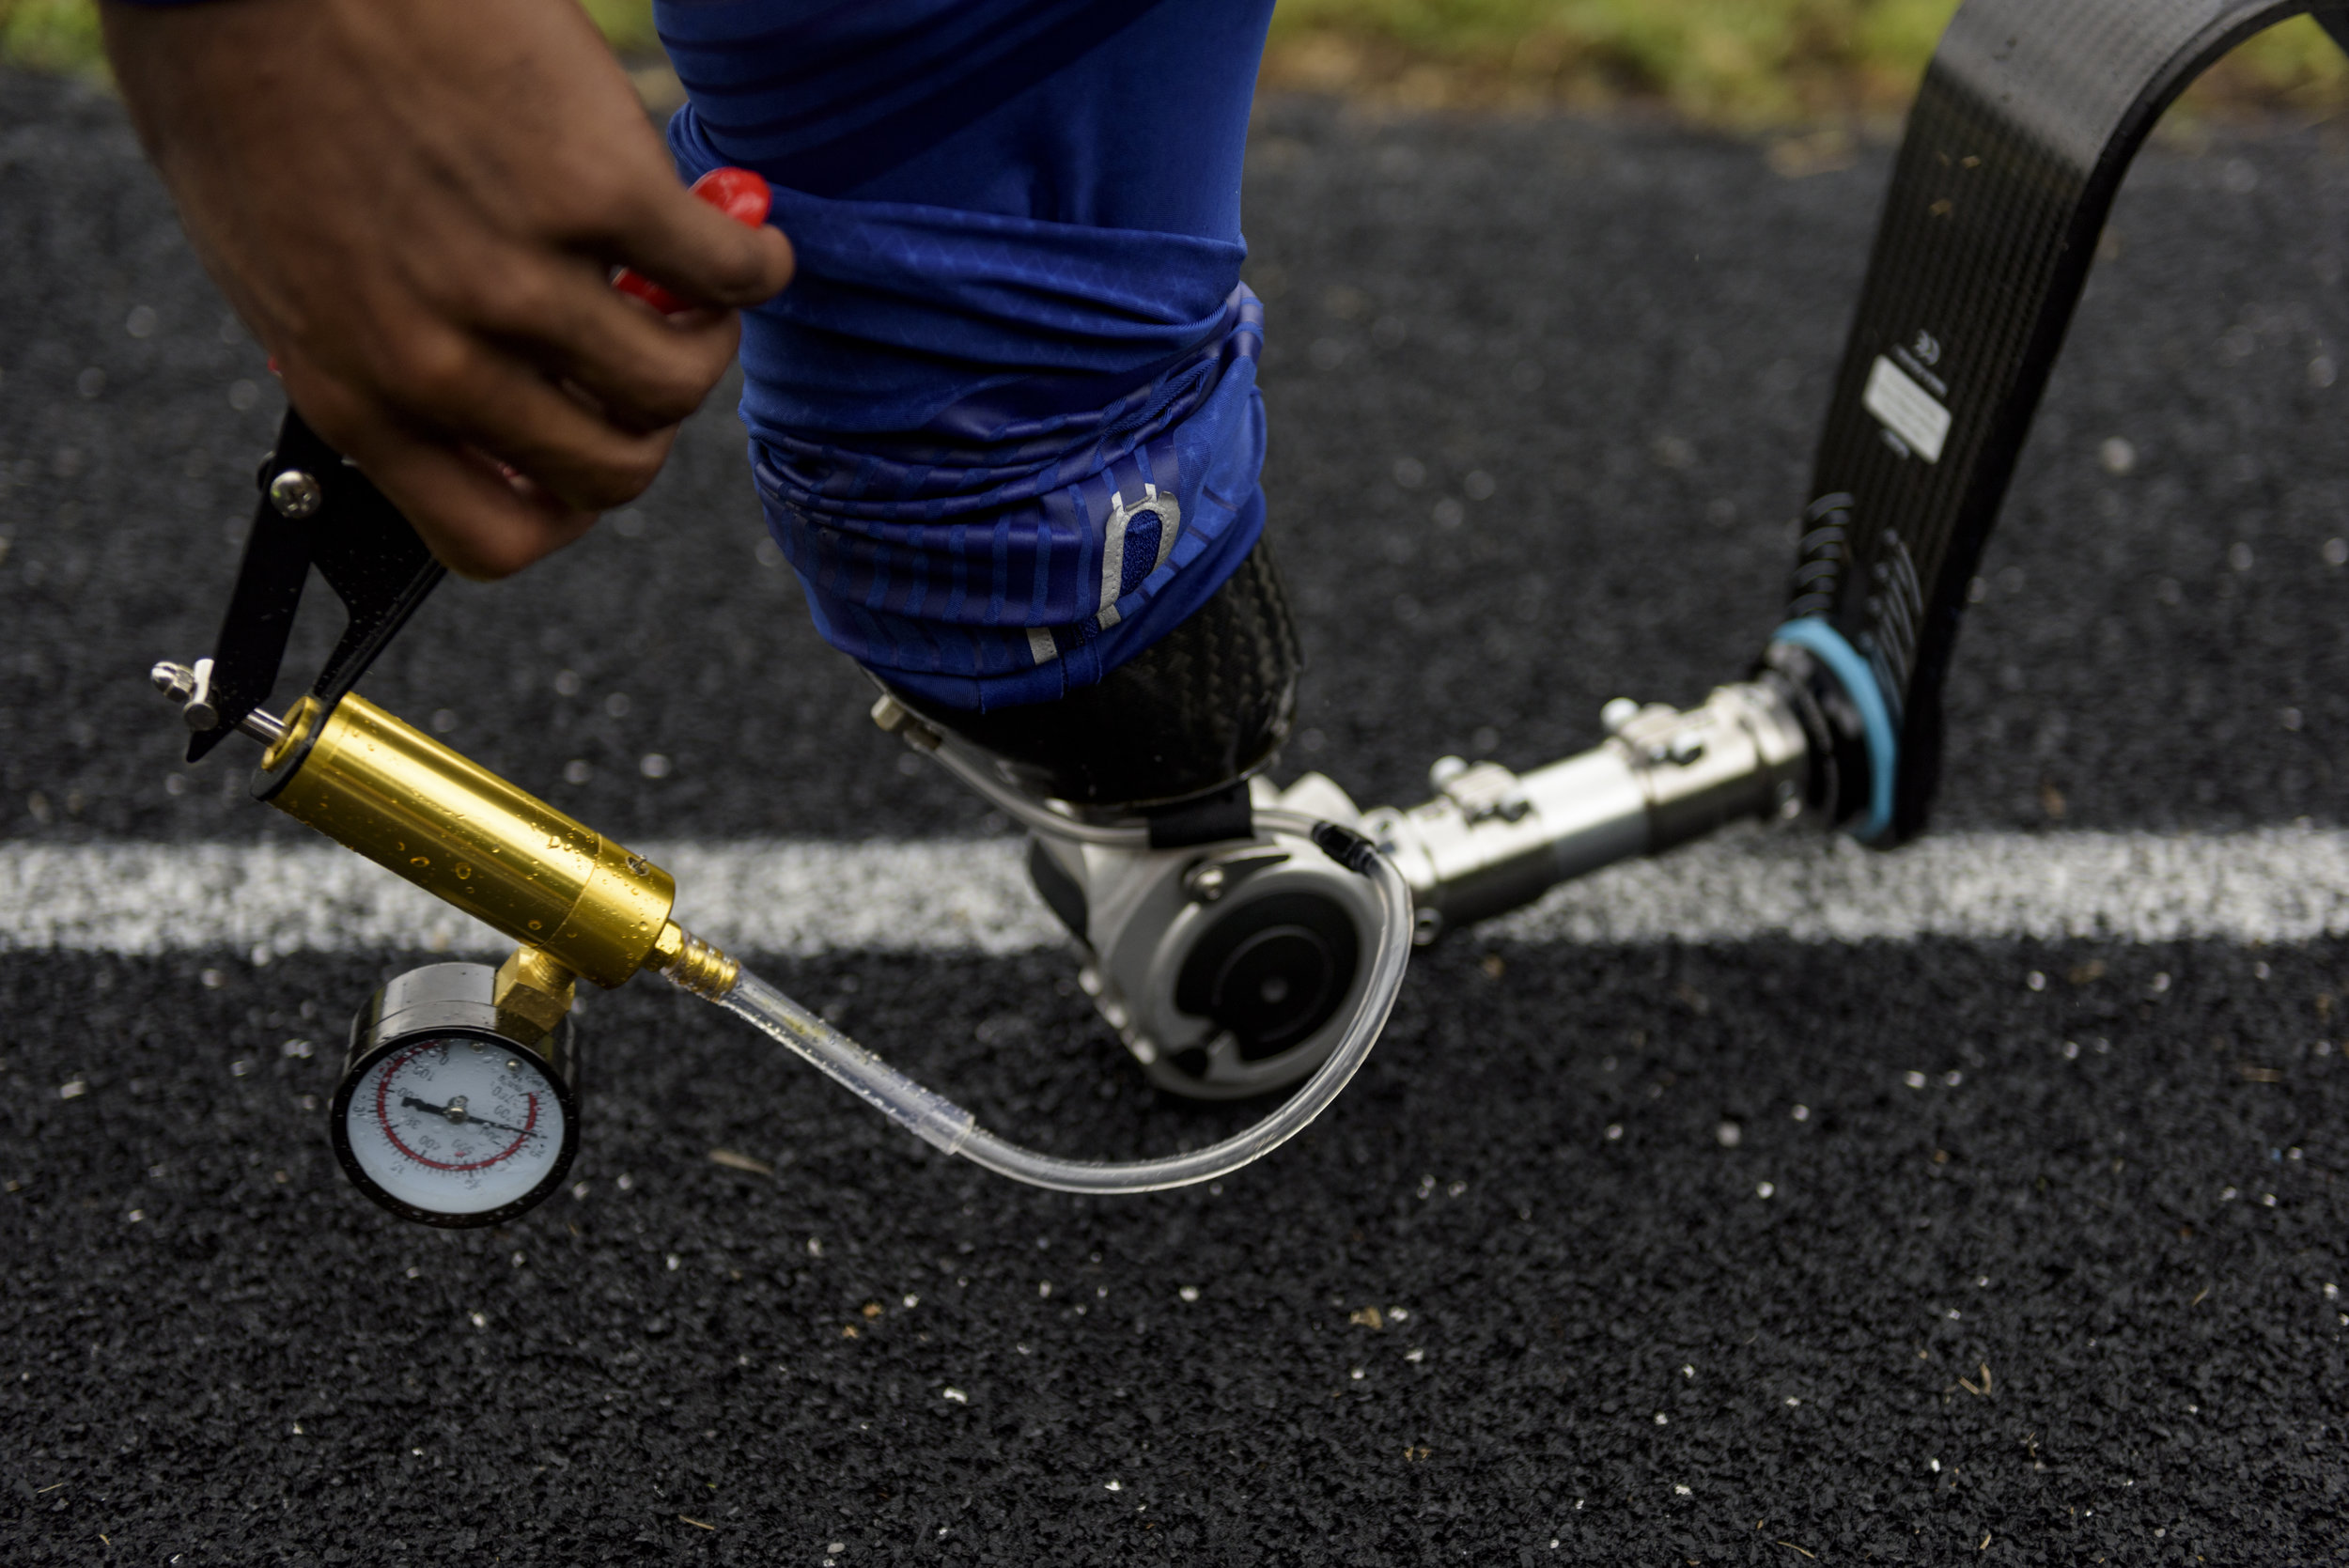 U.S. Paralympian Desmond Jackson regulates the pressure in his prosthetic leg before a race in Durham, NC on June 8, 2019.